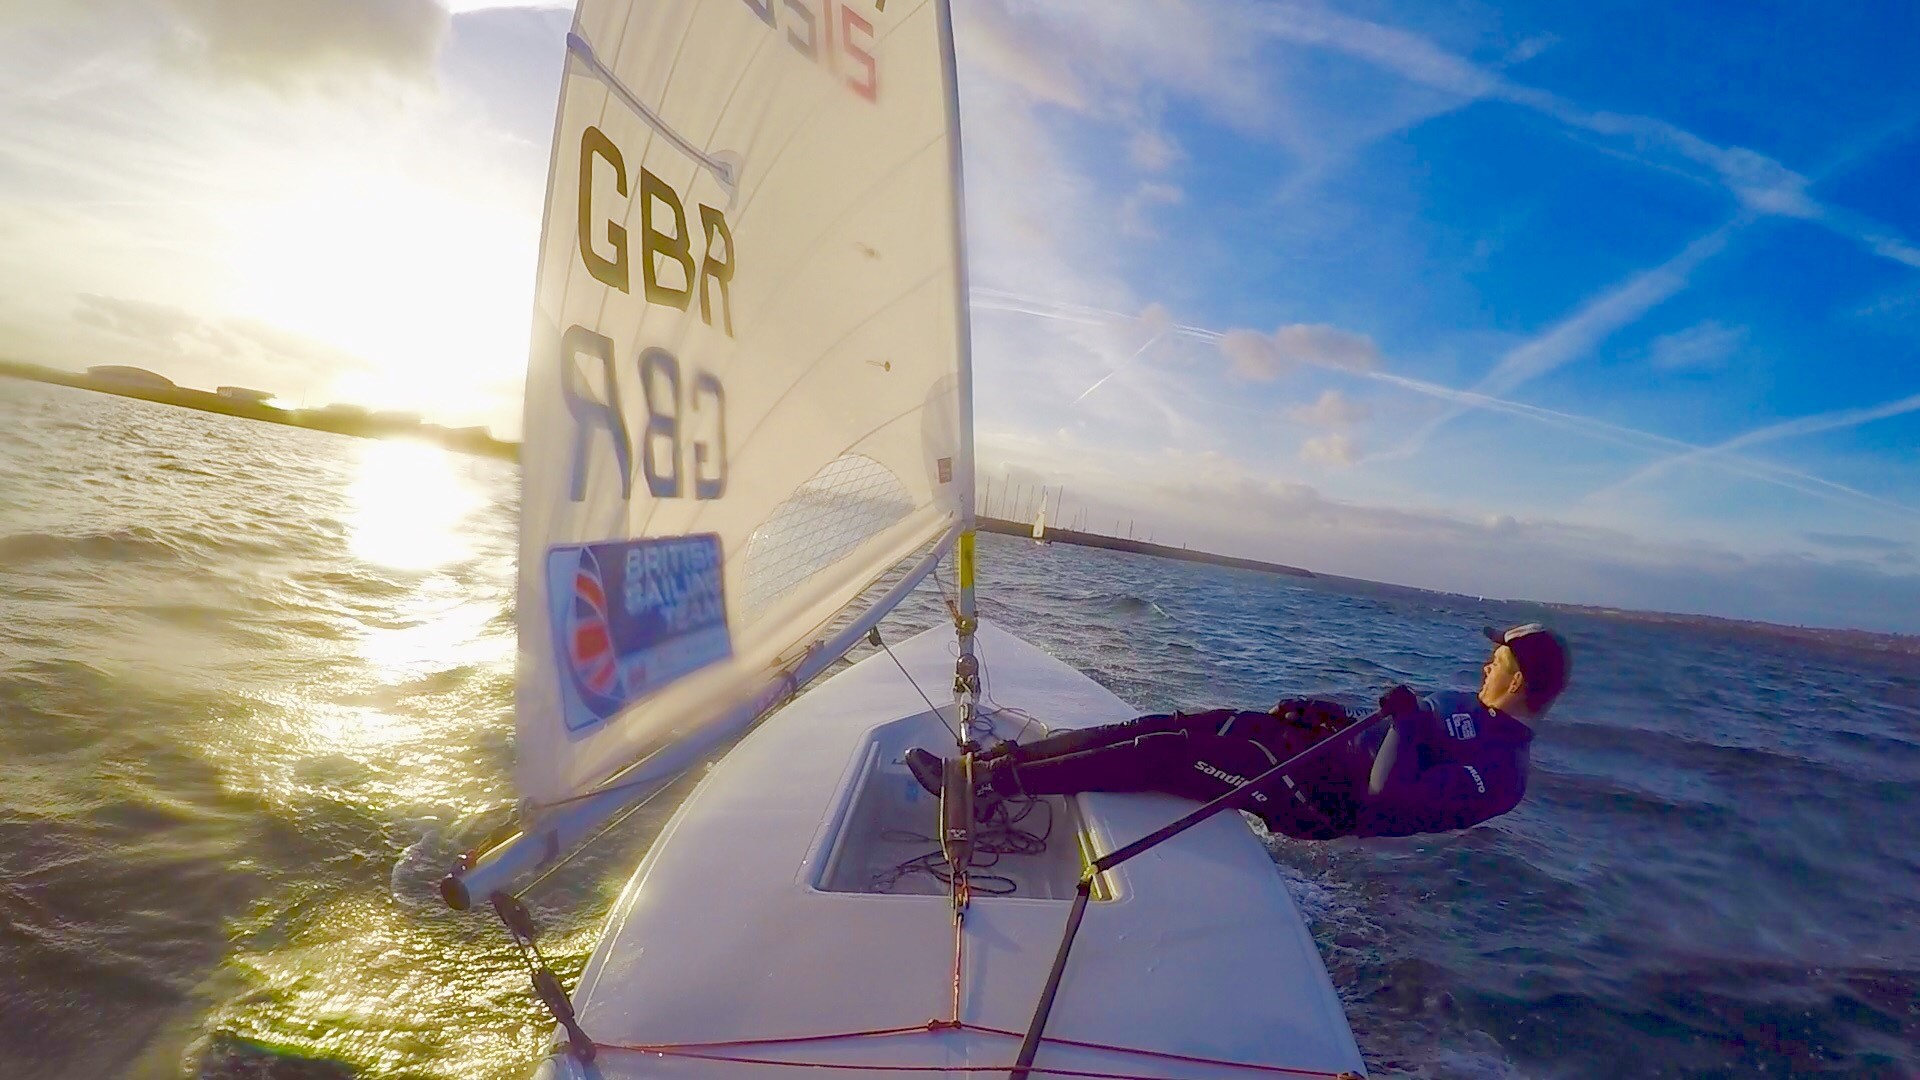 Returning back to Weymouth I have been hammering in some decent on the water and gym sessions. Hopefully it wont get much colder!